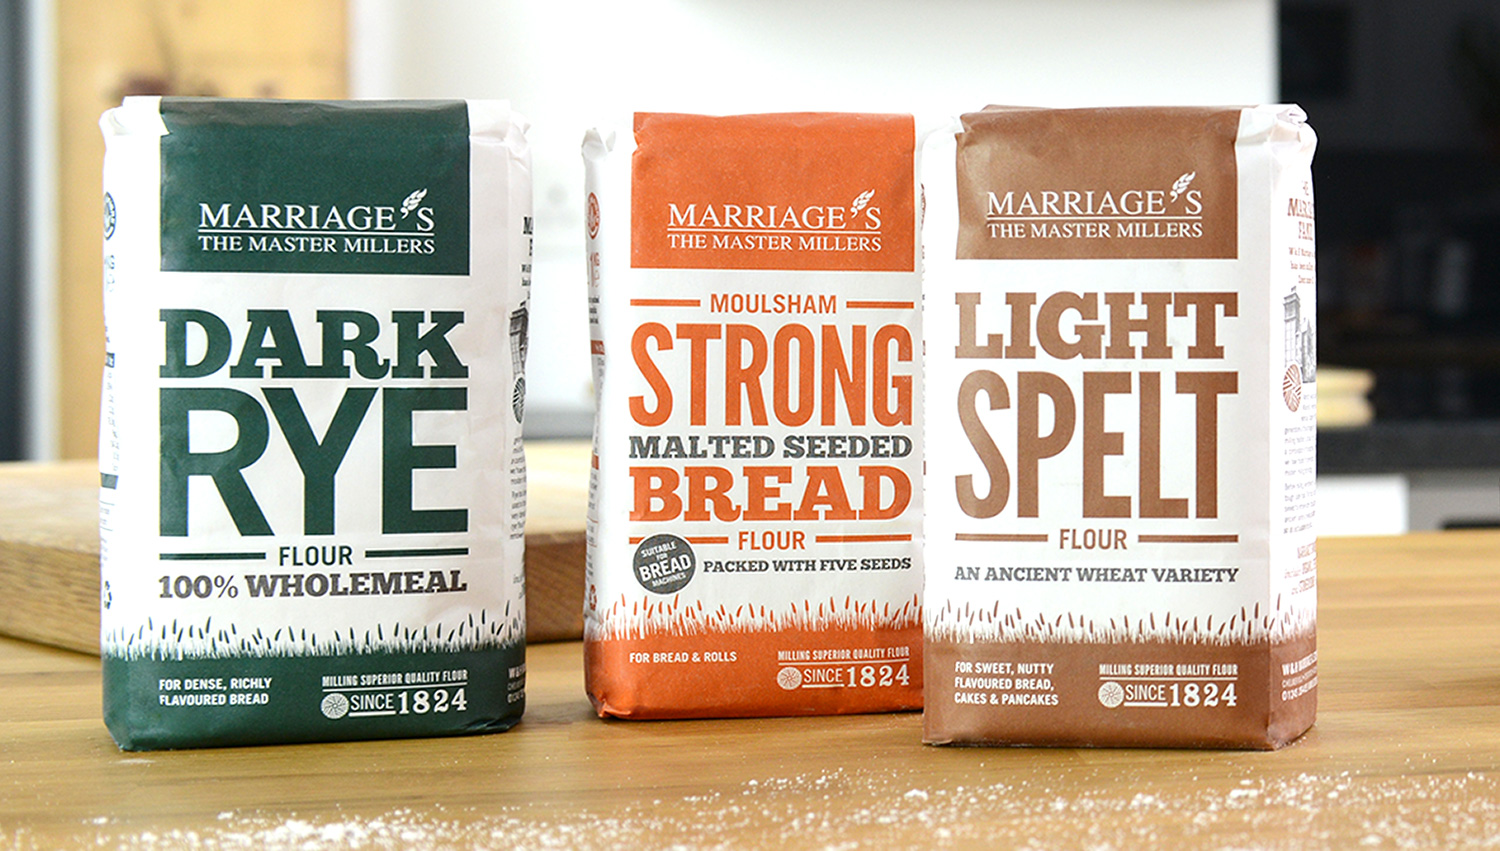 Three Marriage's Flour bags